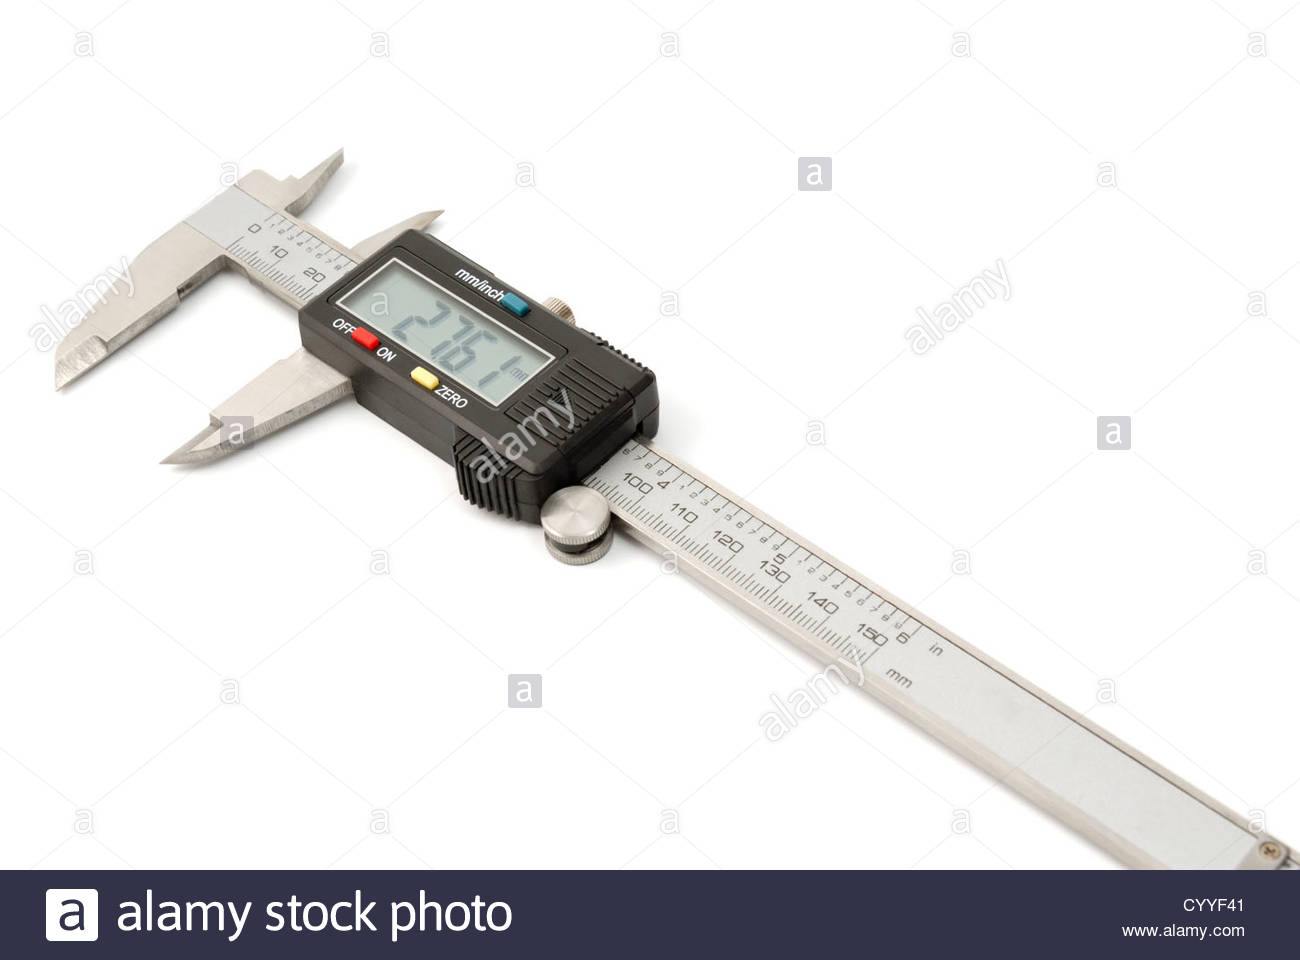 Electronic digital caliper isolated on white background. The precision tool. - Stock Image